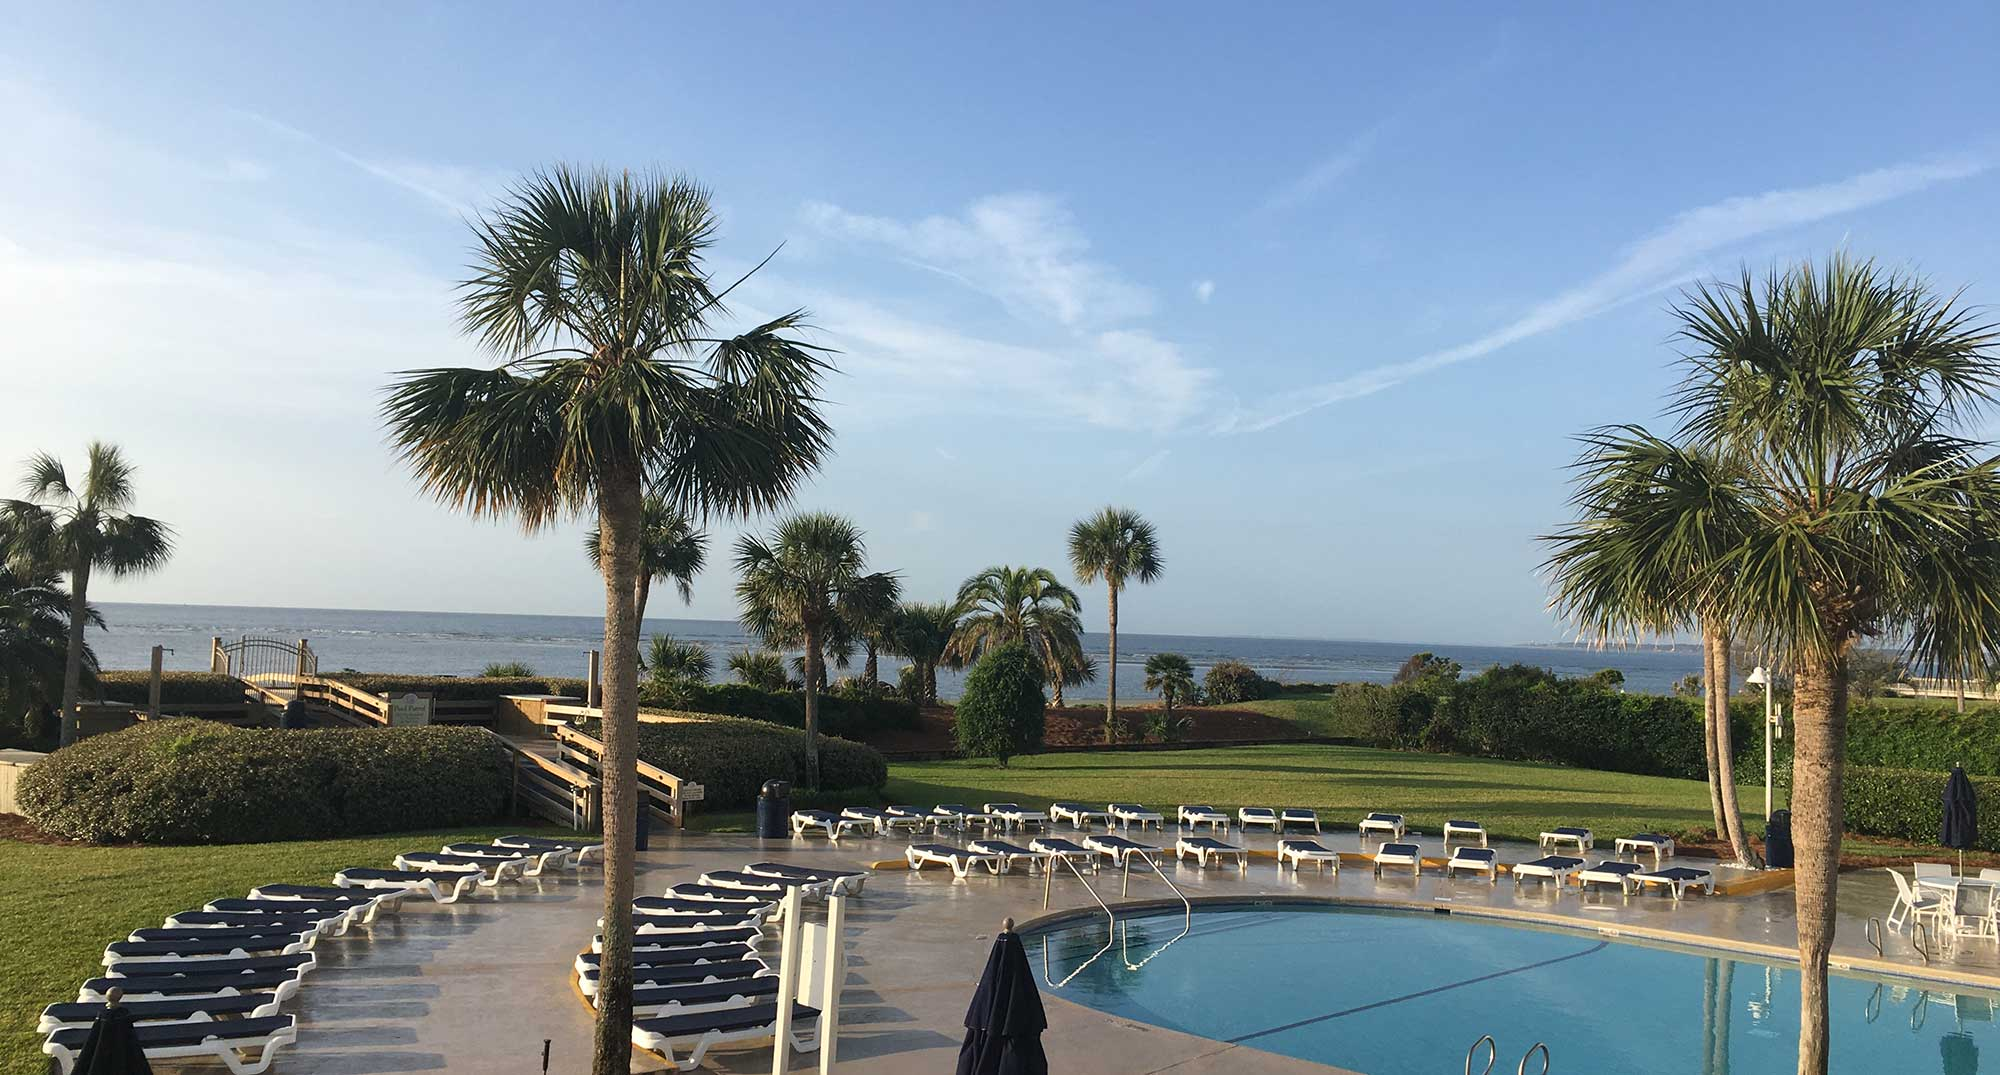 The beach Club at St Simons is an idea home base for families with a beautiful pool and access to the beach just over the boardwalk.